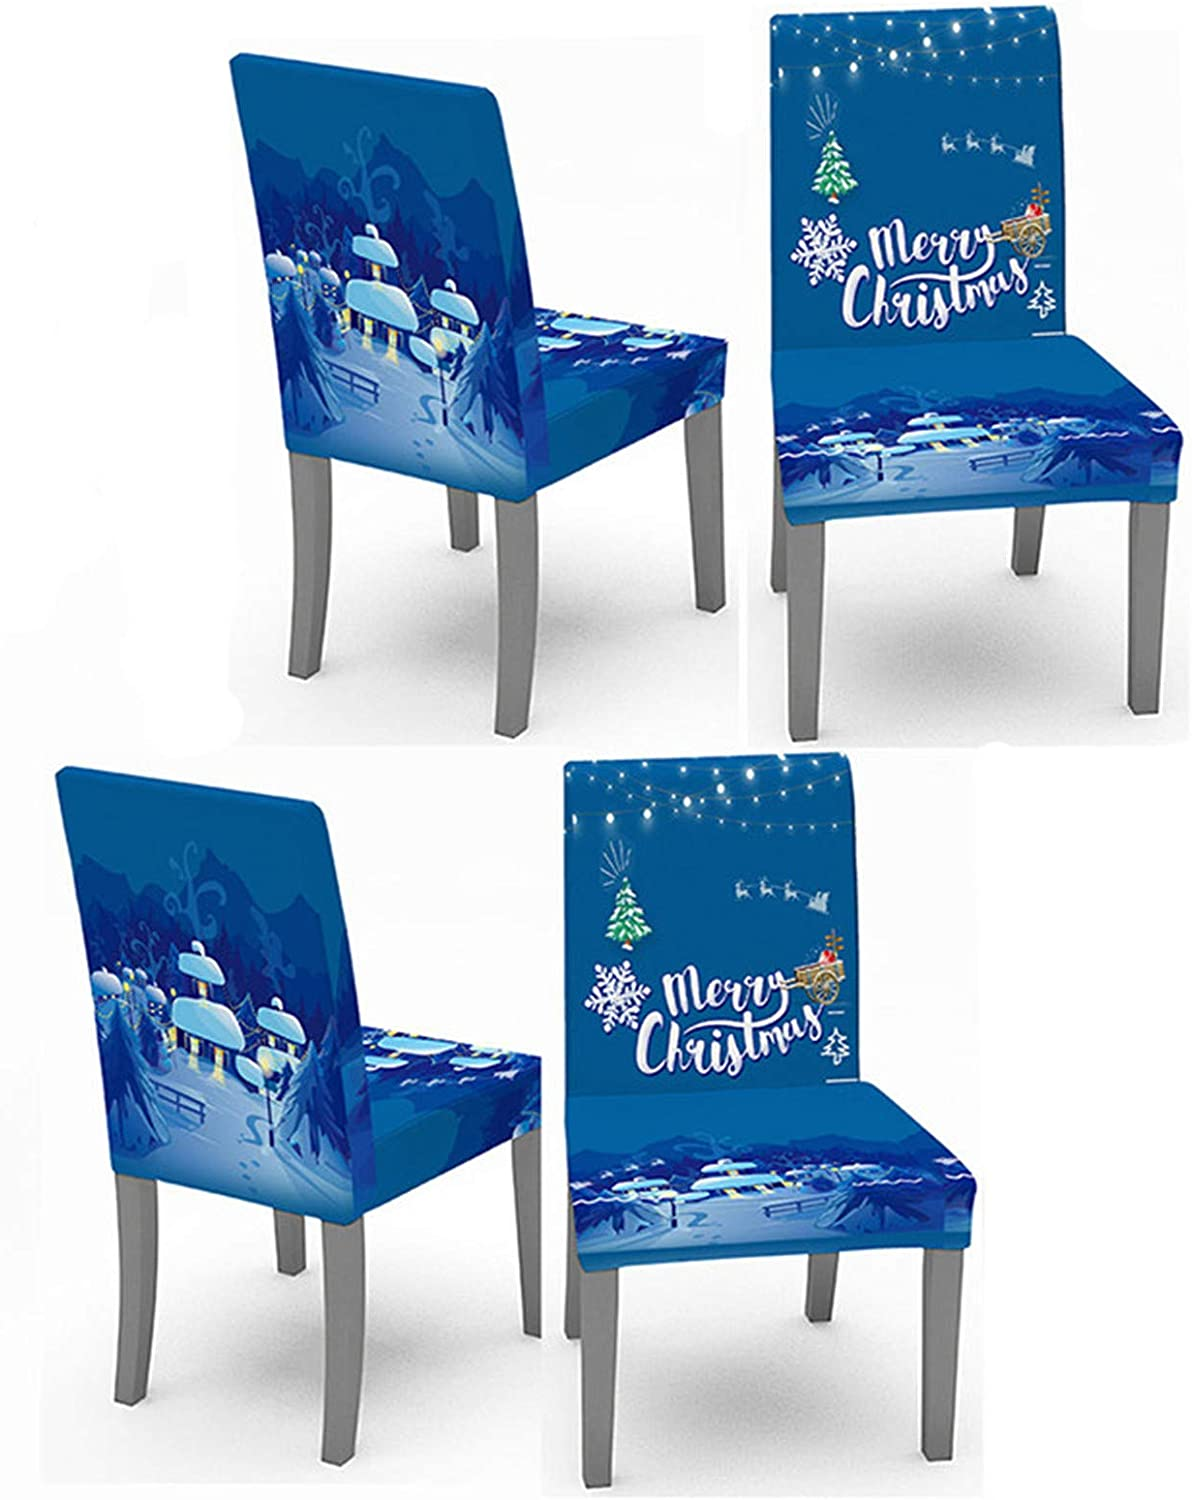 Crafttable 4pcs Stretch Dining Chair Slipcovers, Christmas Printed Chair Cover Seat Slipcover for Kitchen Home Hotel, 03